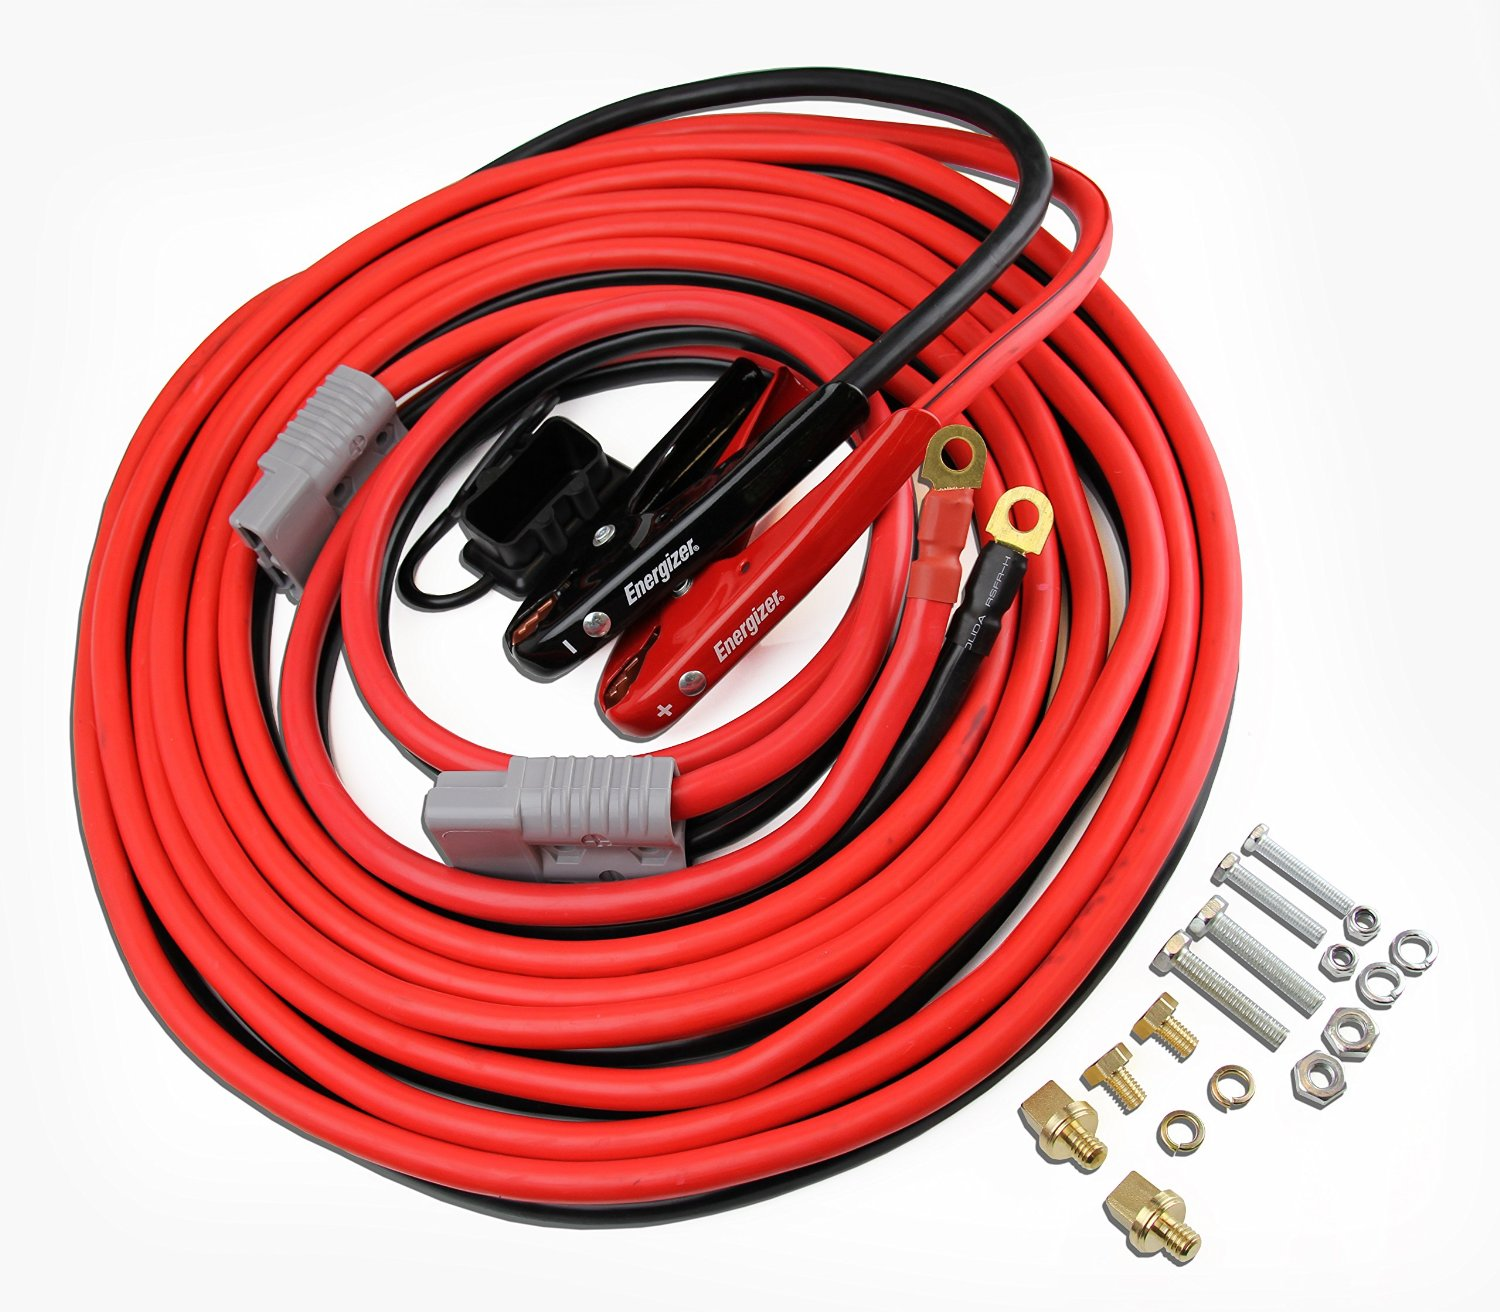 Jumper Cable Kit : Enb booster cables energizer